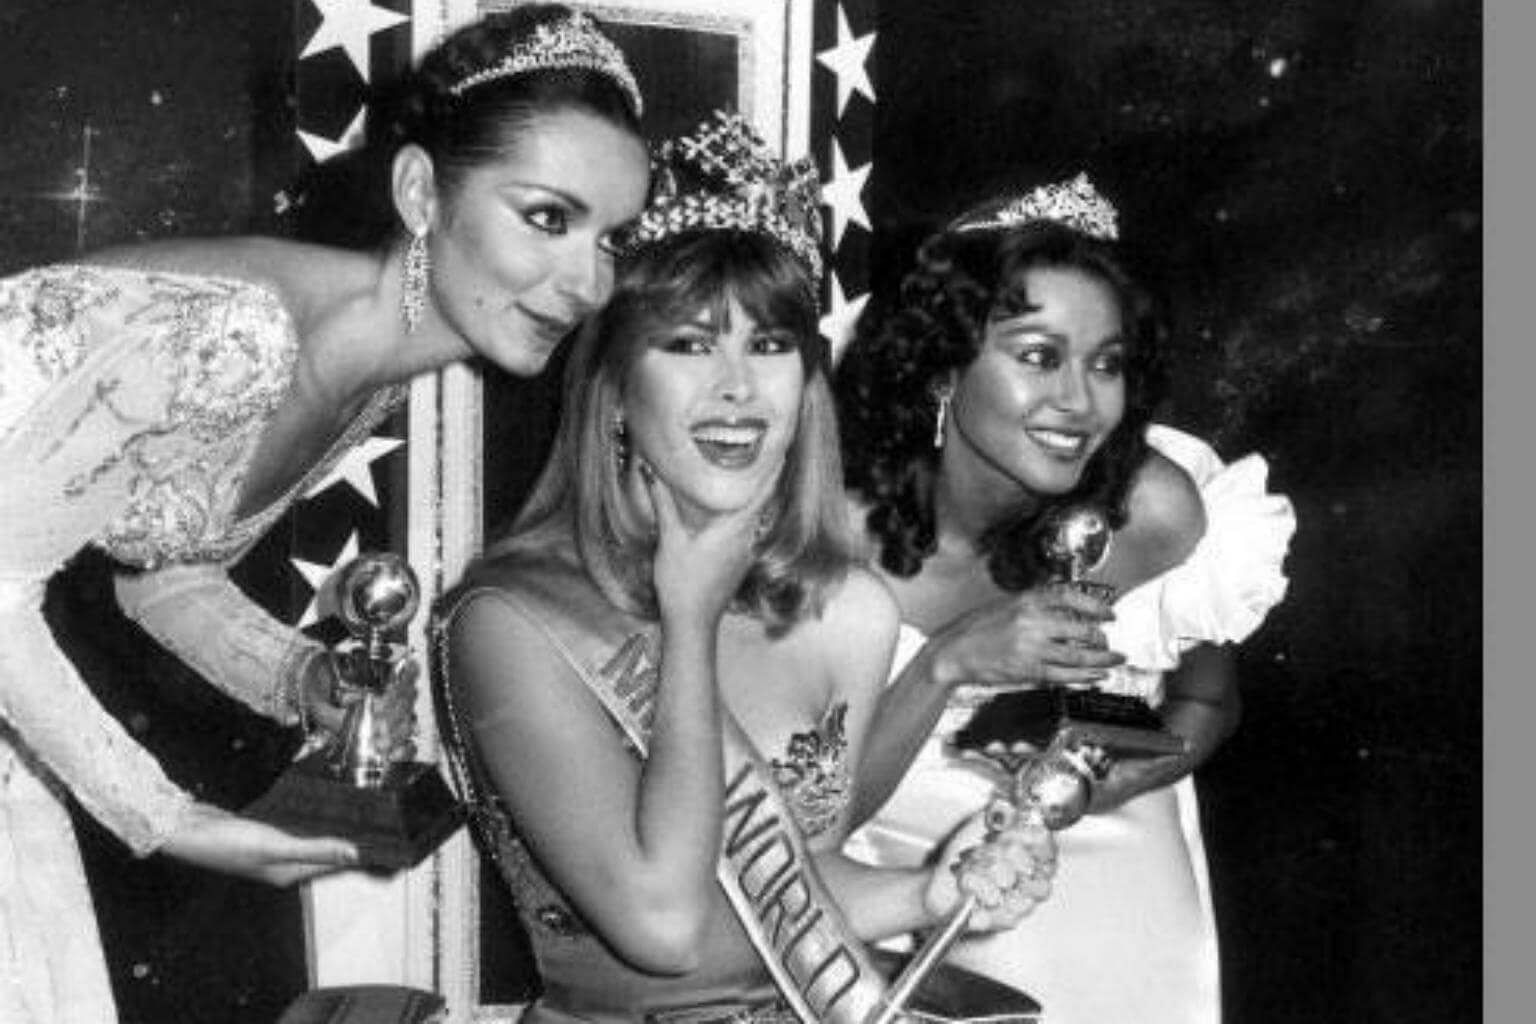 india ties venezuela for record 6th miss world title: a look at the